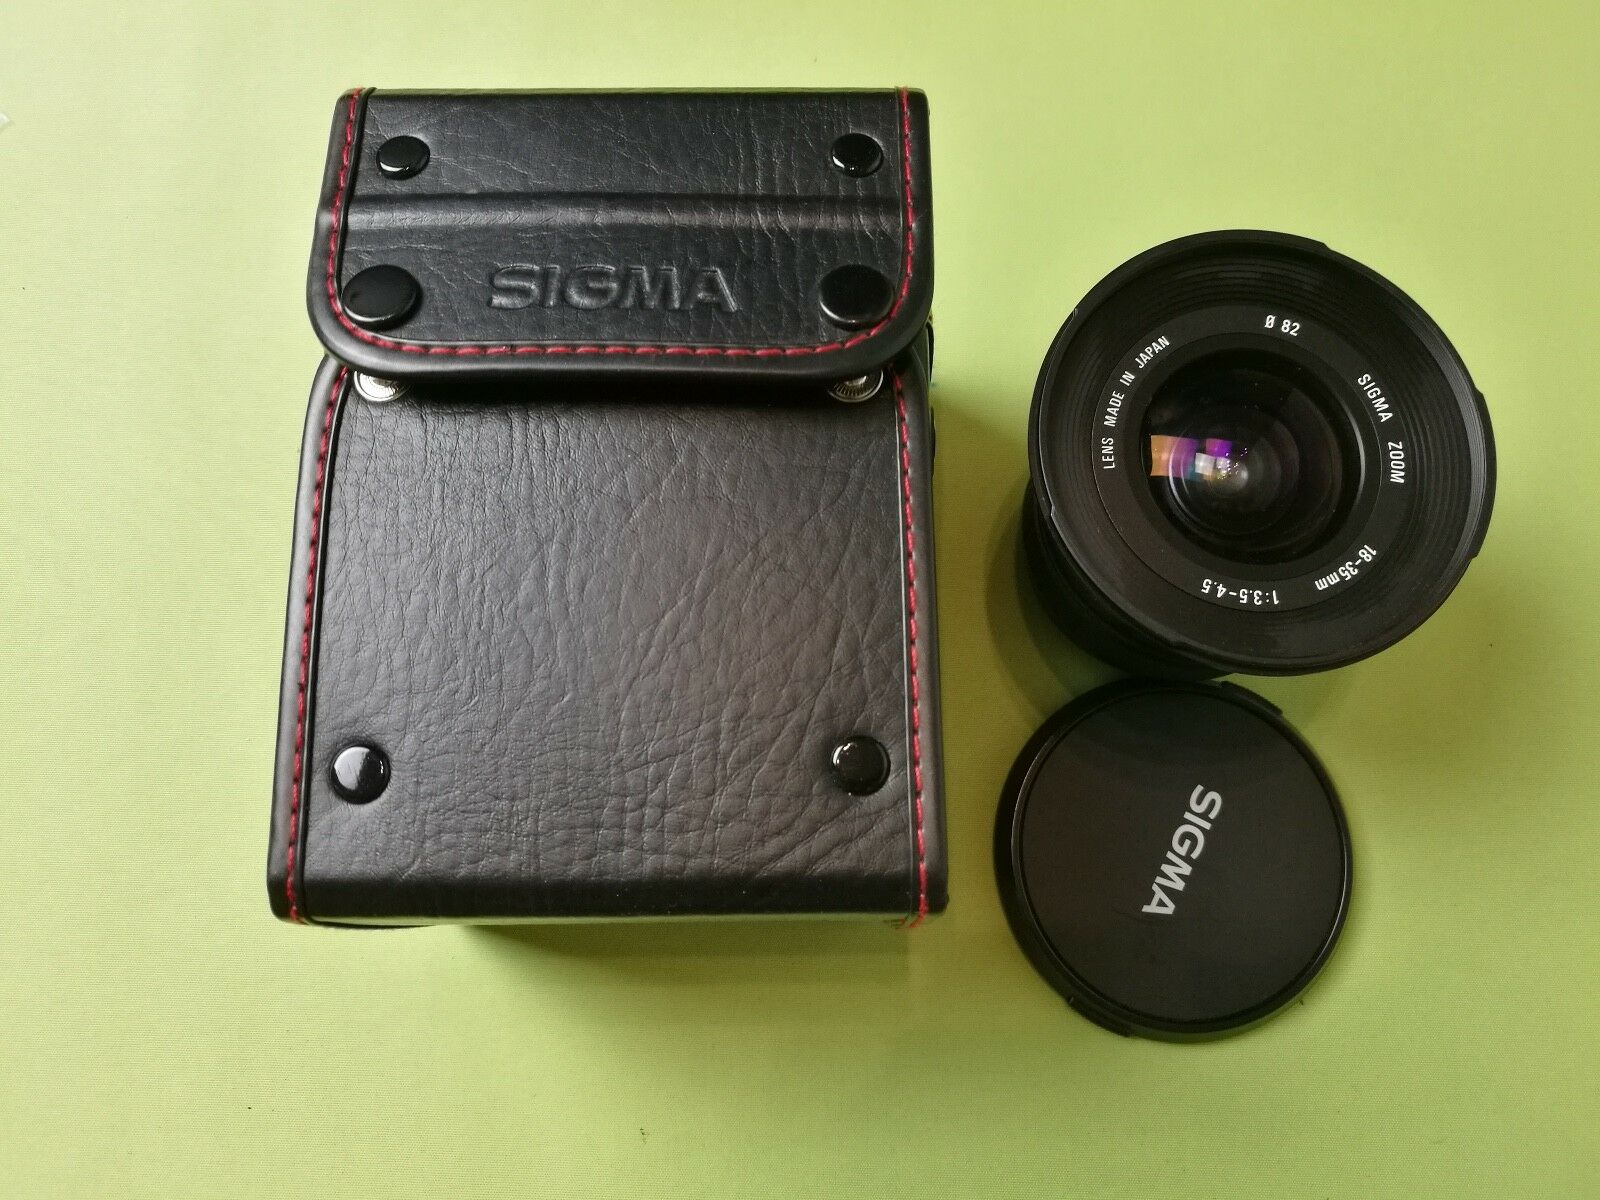 SIGMA 1 3,5-4,5 18-35mm aspherical